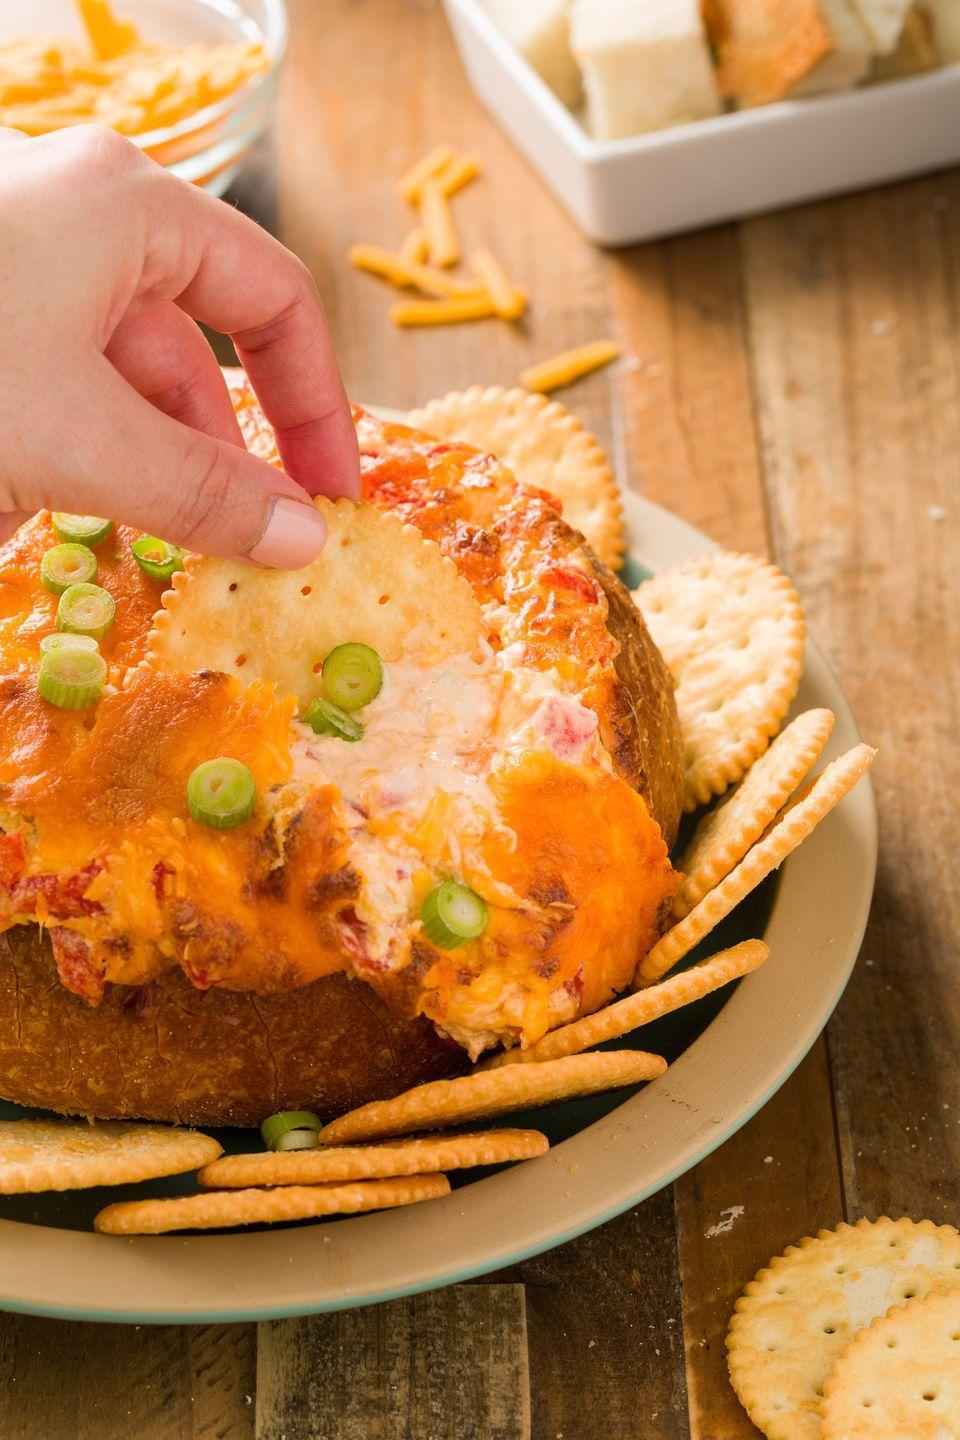 """<p>Fact: Loaded with Southern favorite pimiento cheese, this simple crowd-pleaser will always be the hit of a party spread.</p><p>Get the recipe from <a href=""""https://www.redbookmag.com/cooking/recipe-ideas/recipes/a44541/baked-pimiento-cheese-dip-in-a-bread-bowl-recipe/"""" rel=""""nofollow noopener"""" target=""""_blank"""" data-ylk=""""slk:Delish"""" class=""""link rapid-noclick-resp"""">Delish</a>.</p>"""